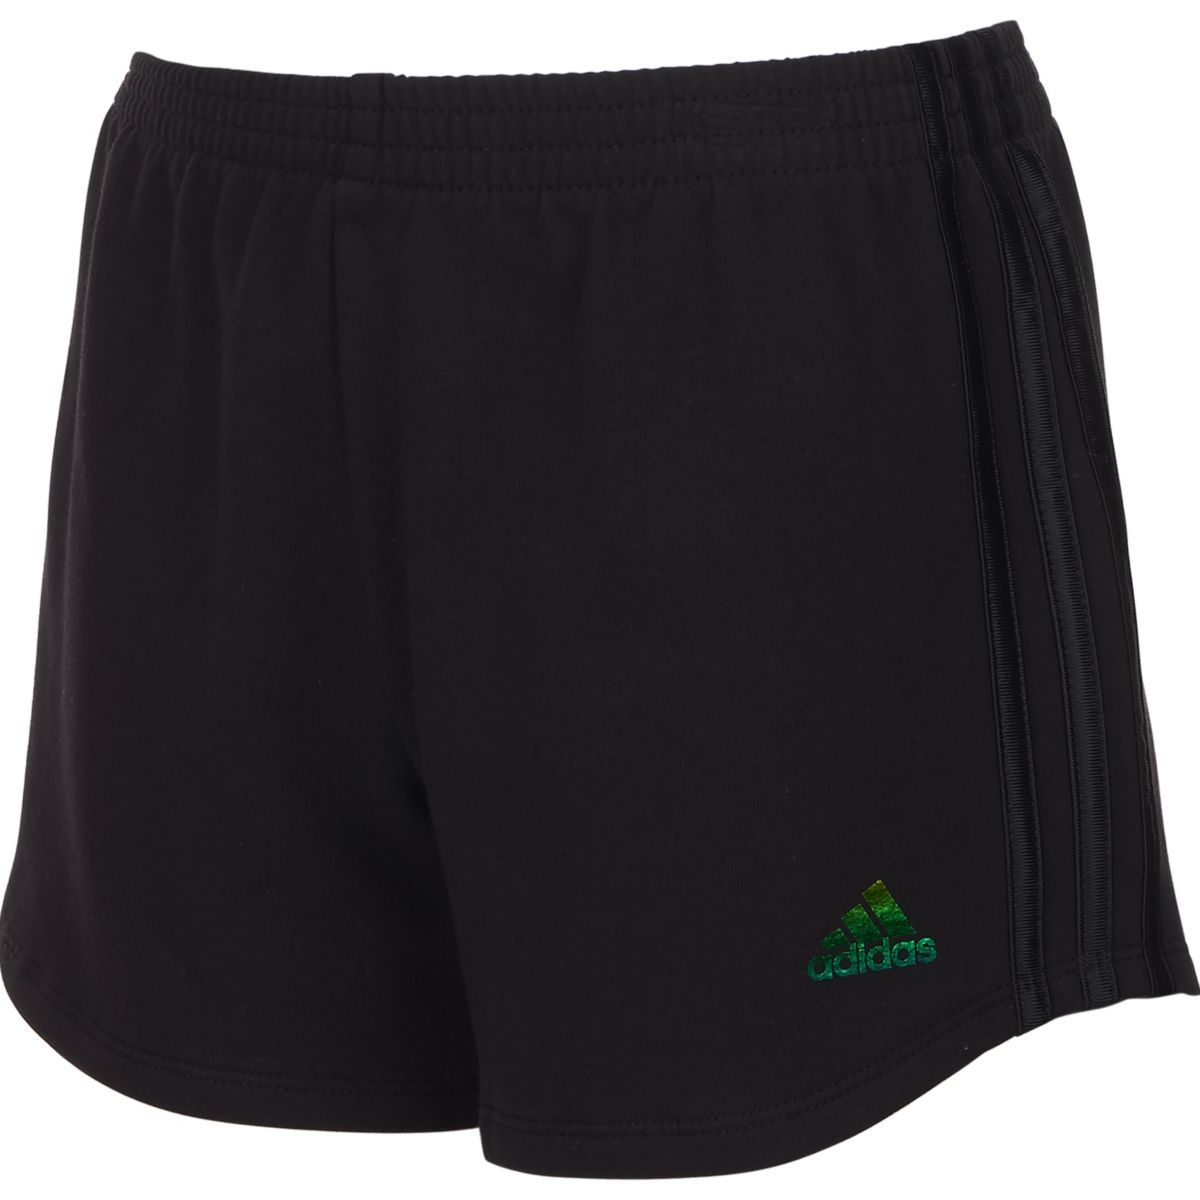 Adidas Big Girls' Sport Shorts - Black, M